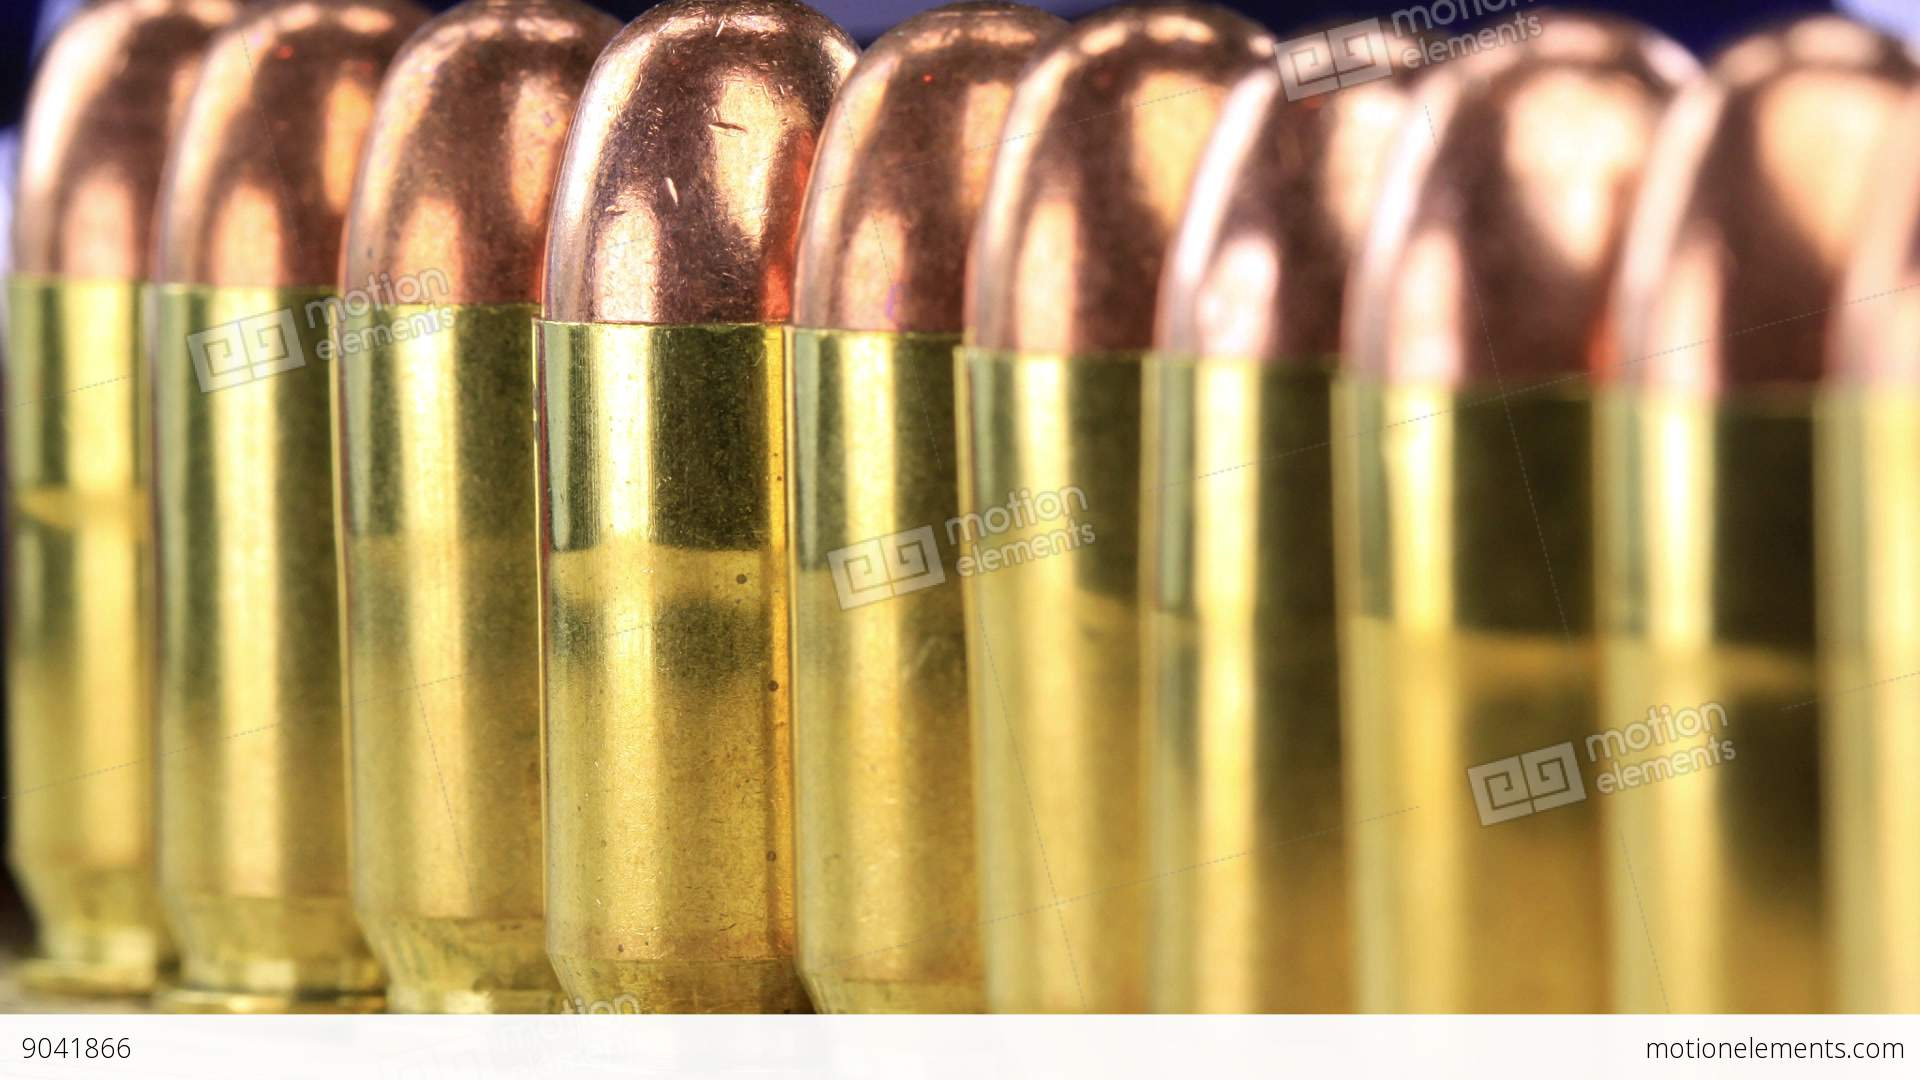 A Row Of 45 Caliber Ammunition Copper Plated Bullets With Brass ...